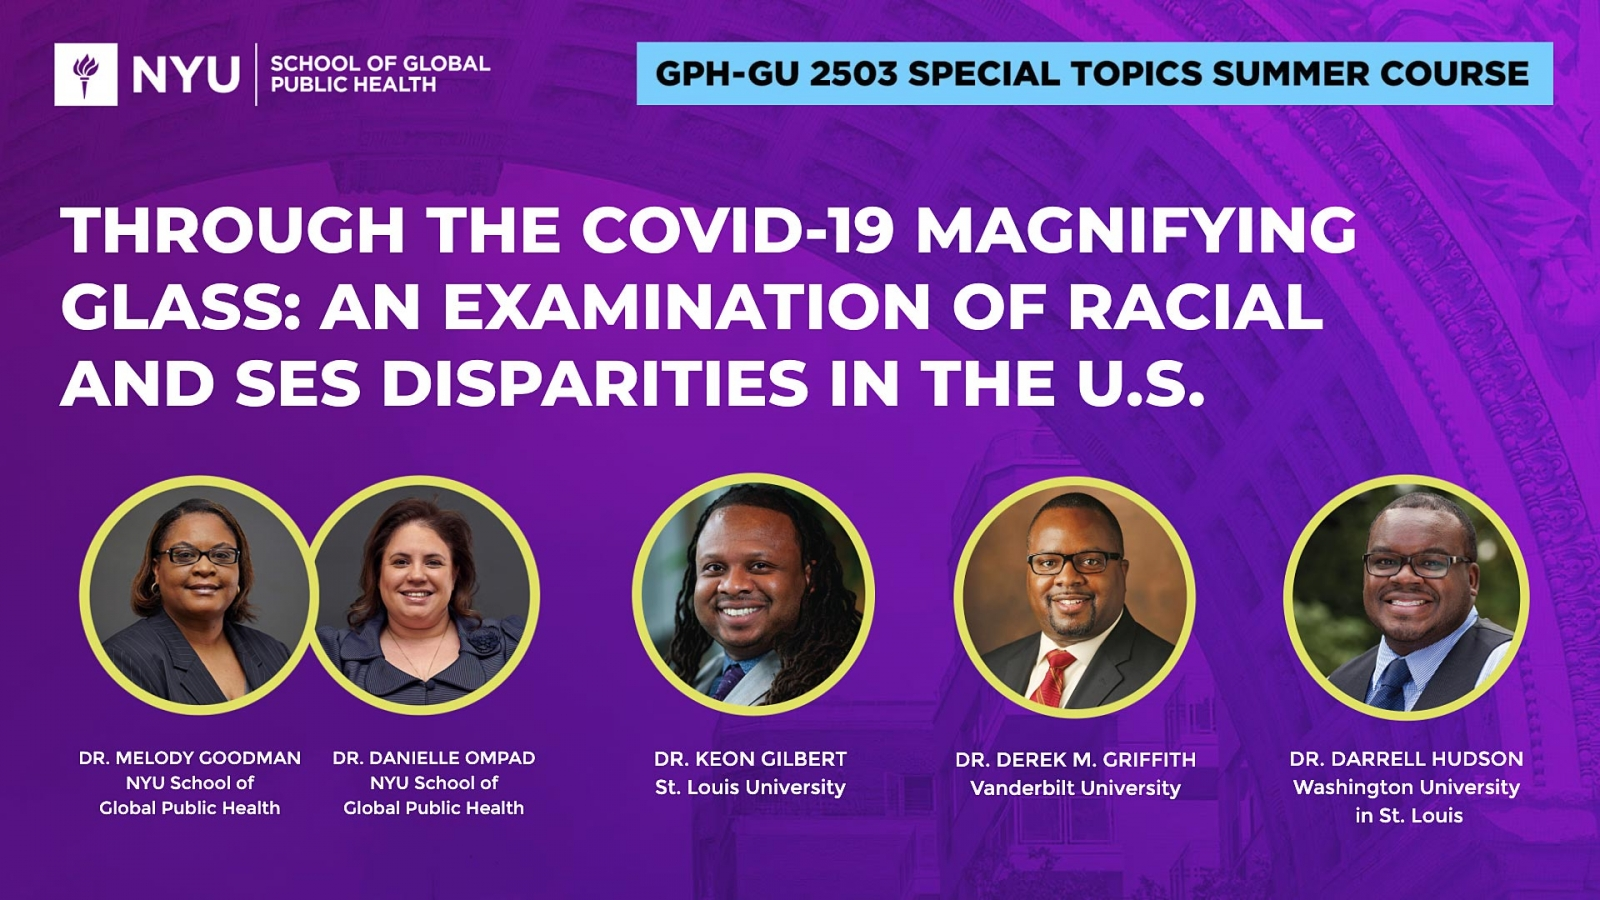 Through the COVID-19 Magnifying Glass: An Examination of Racial and SES Disparities in the United States